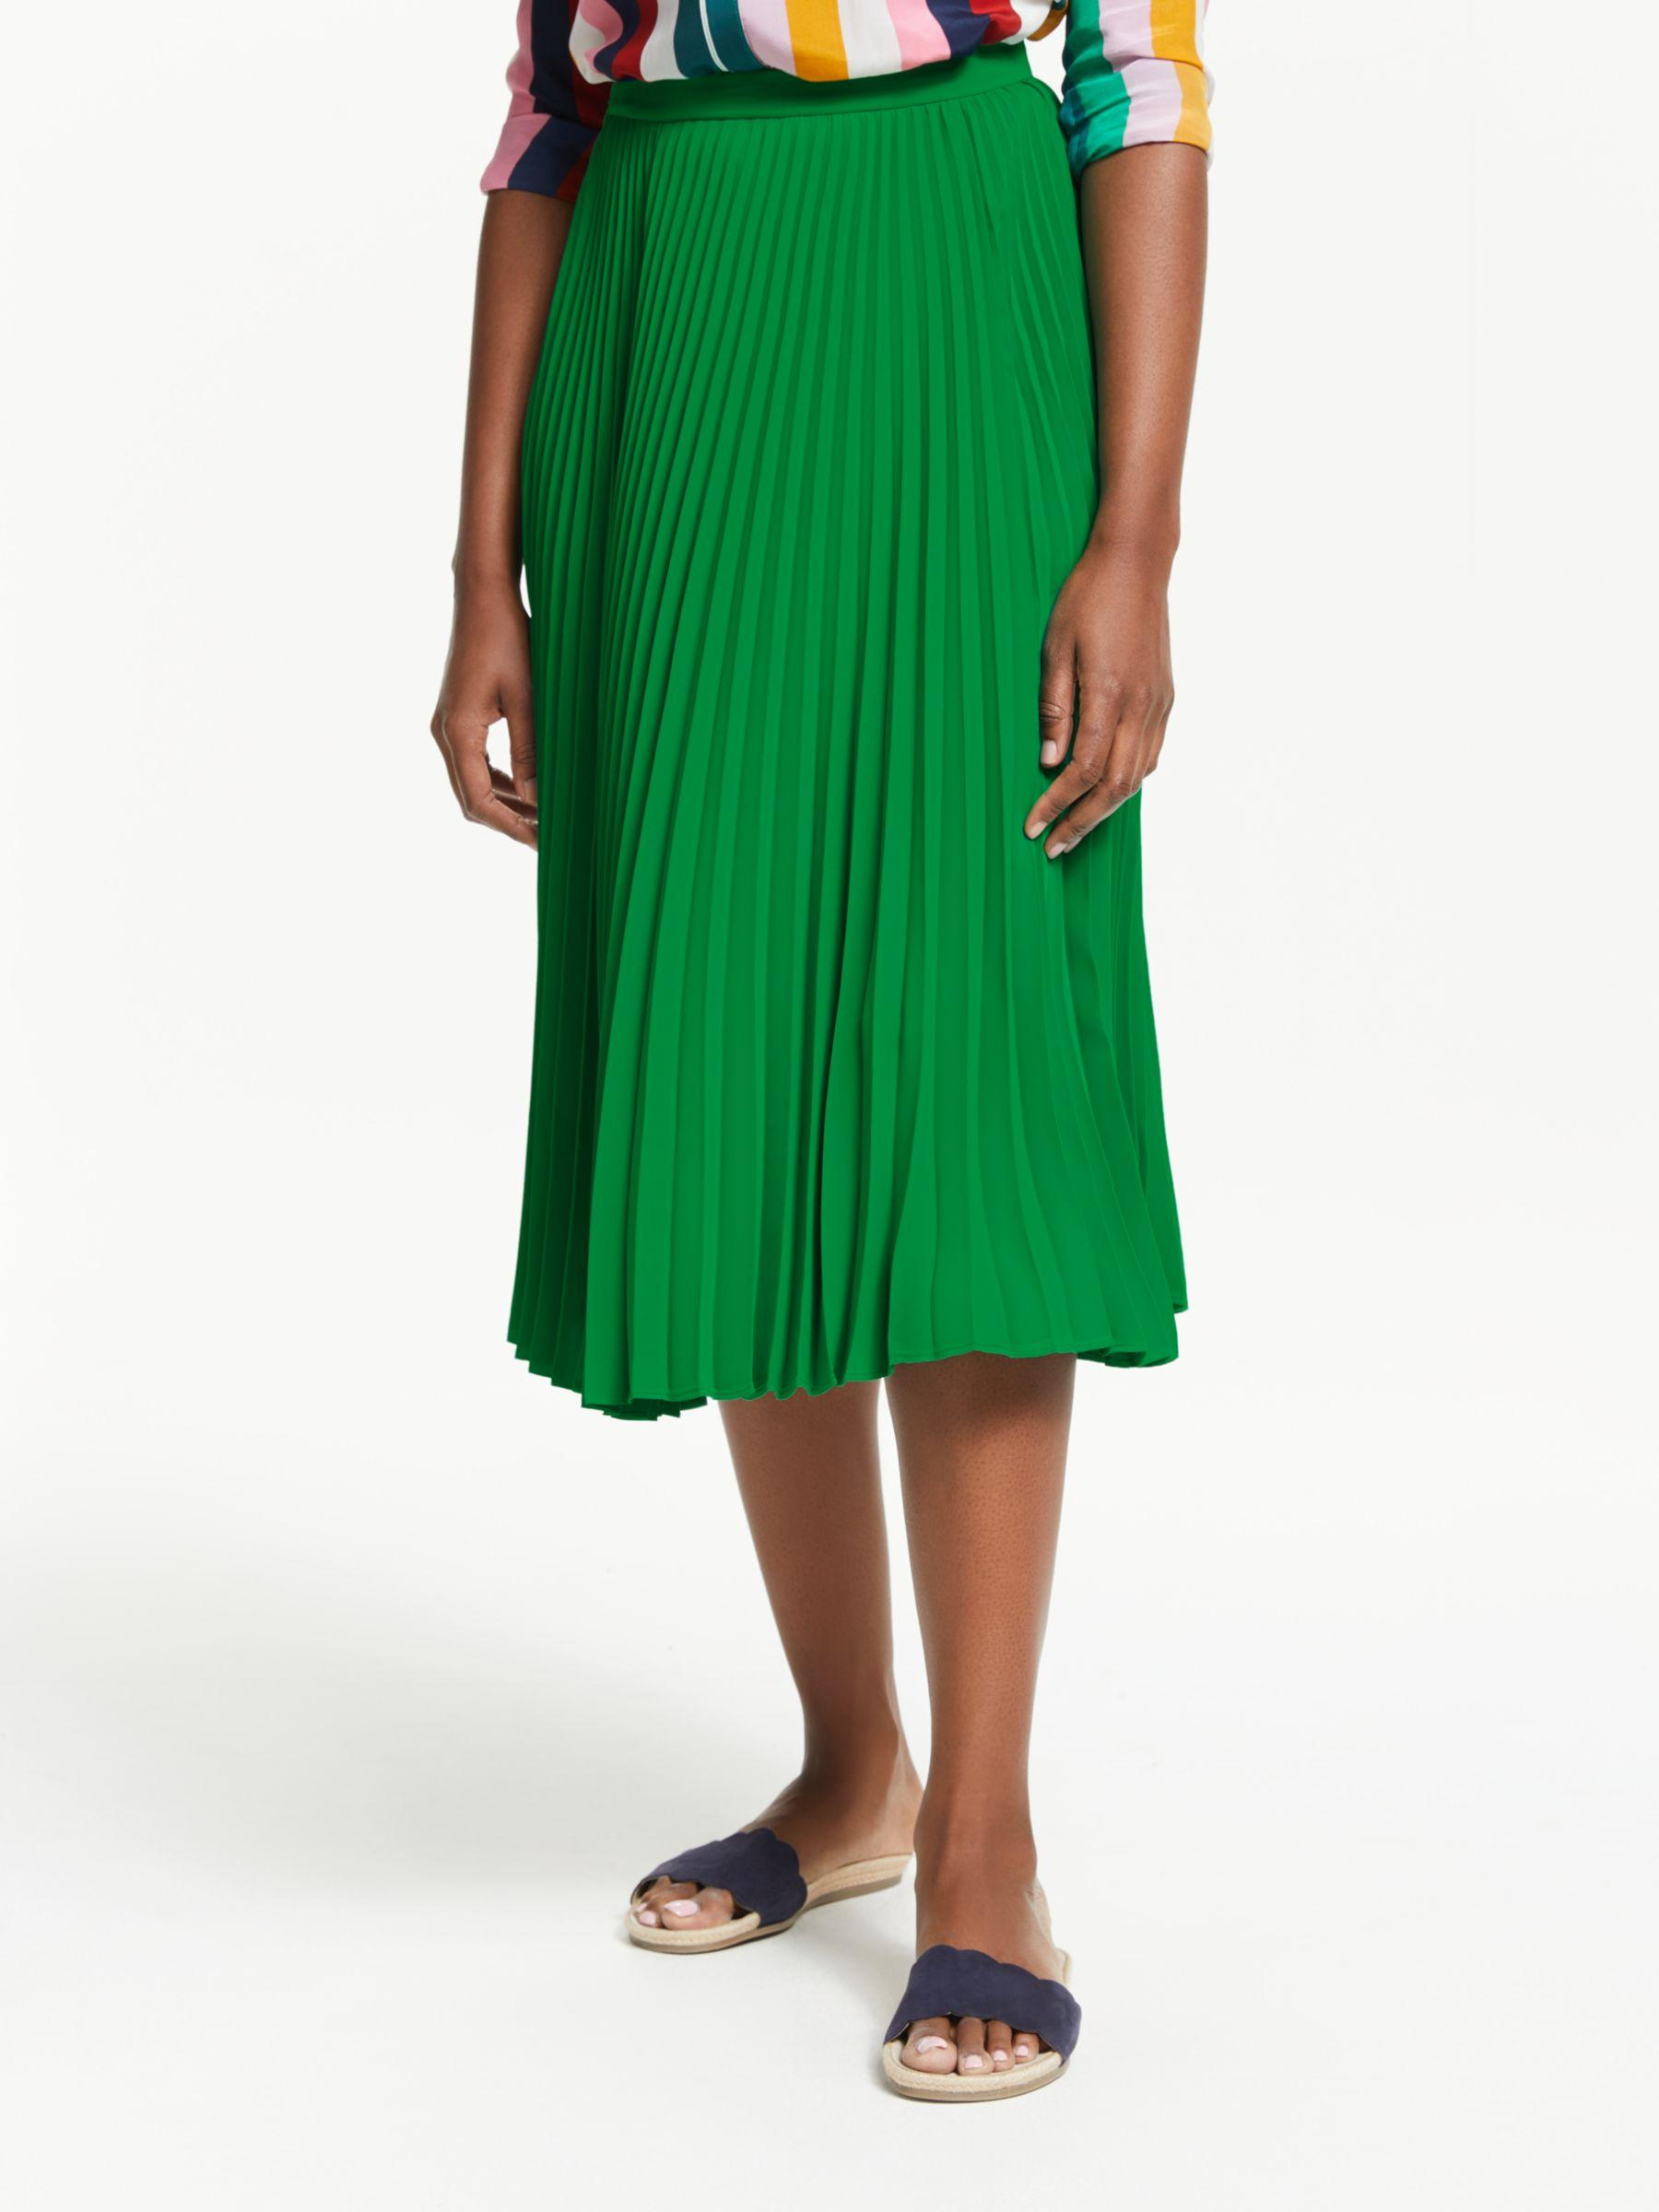 8ac3a0fee Boden. Women's Green Kristen Pleated Skirt. £110 From John Lewis and  Partners